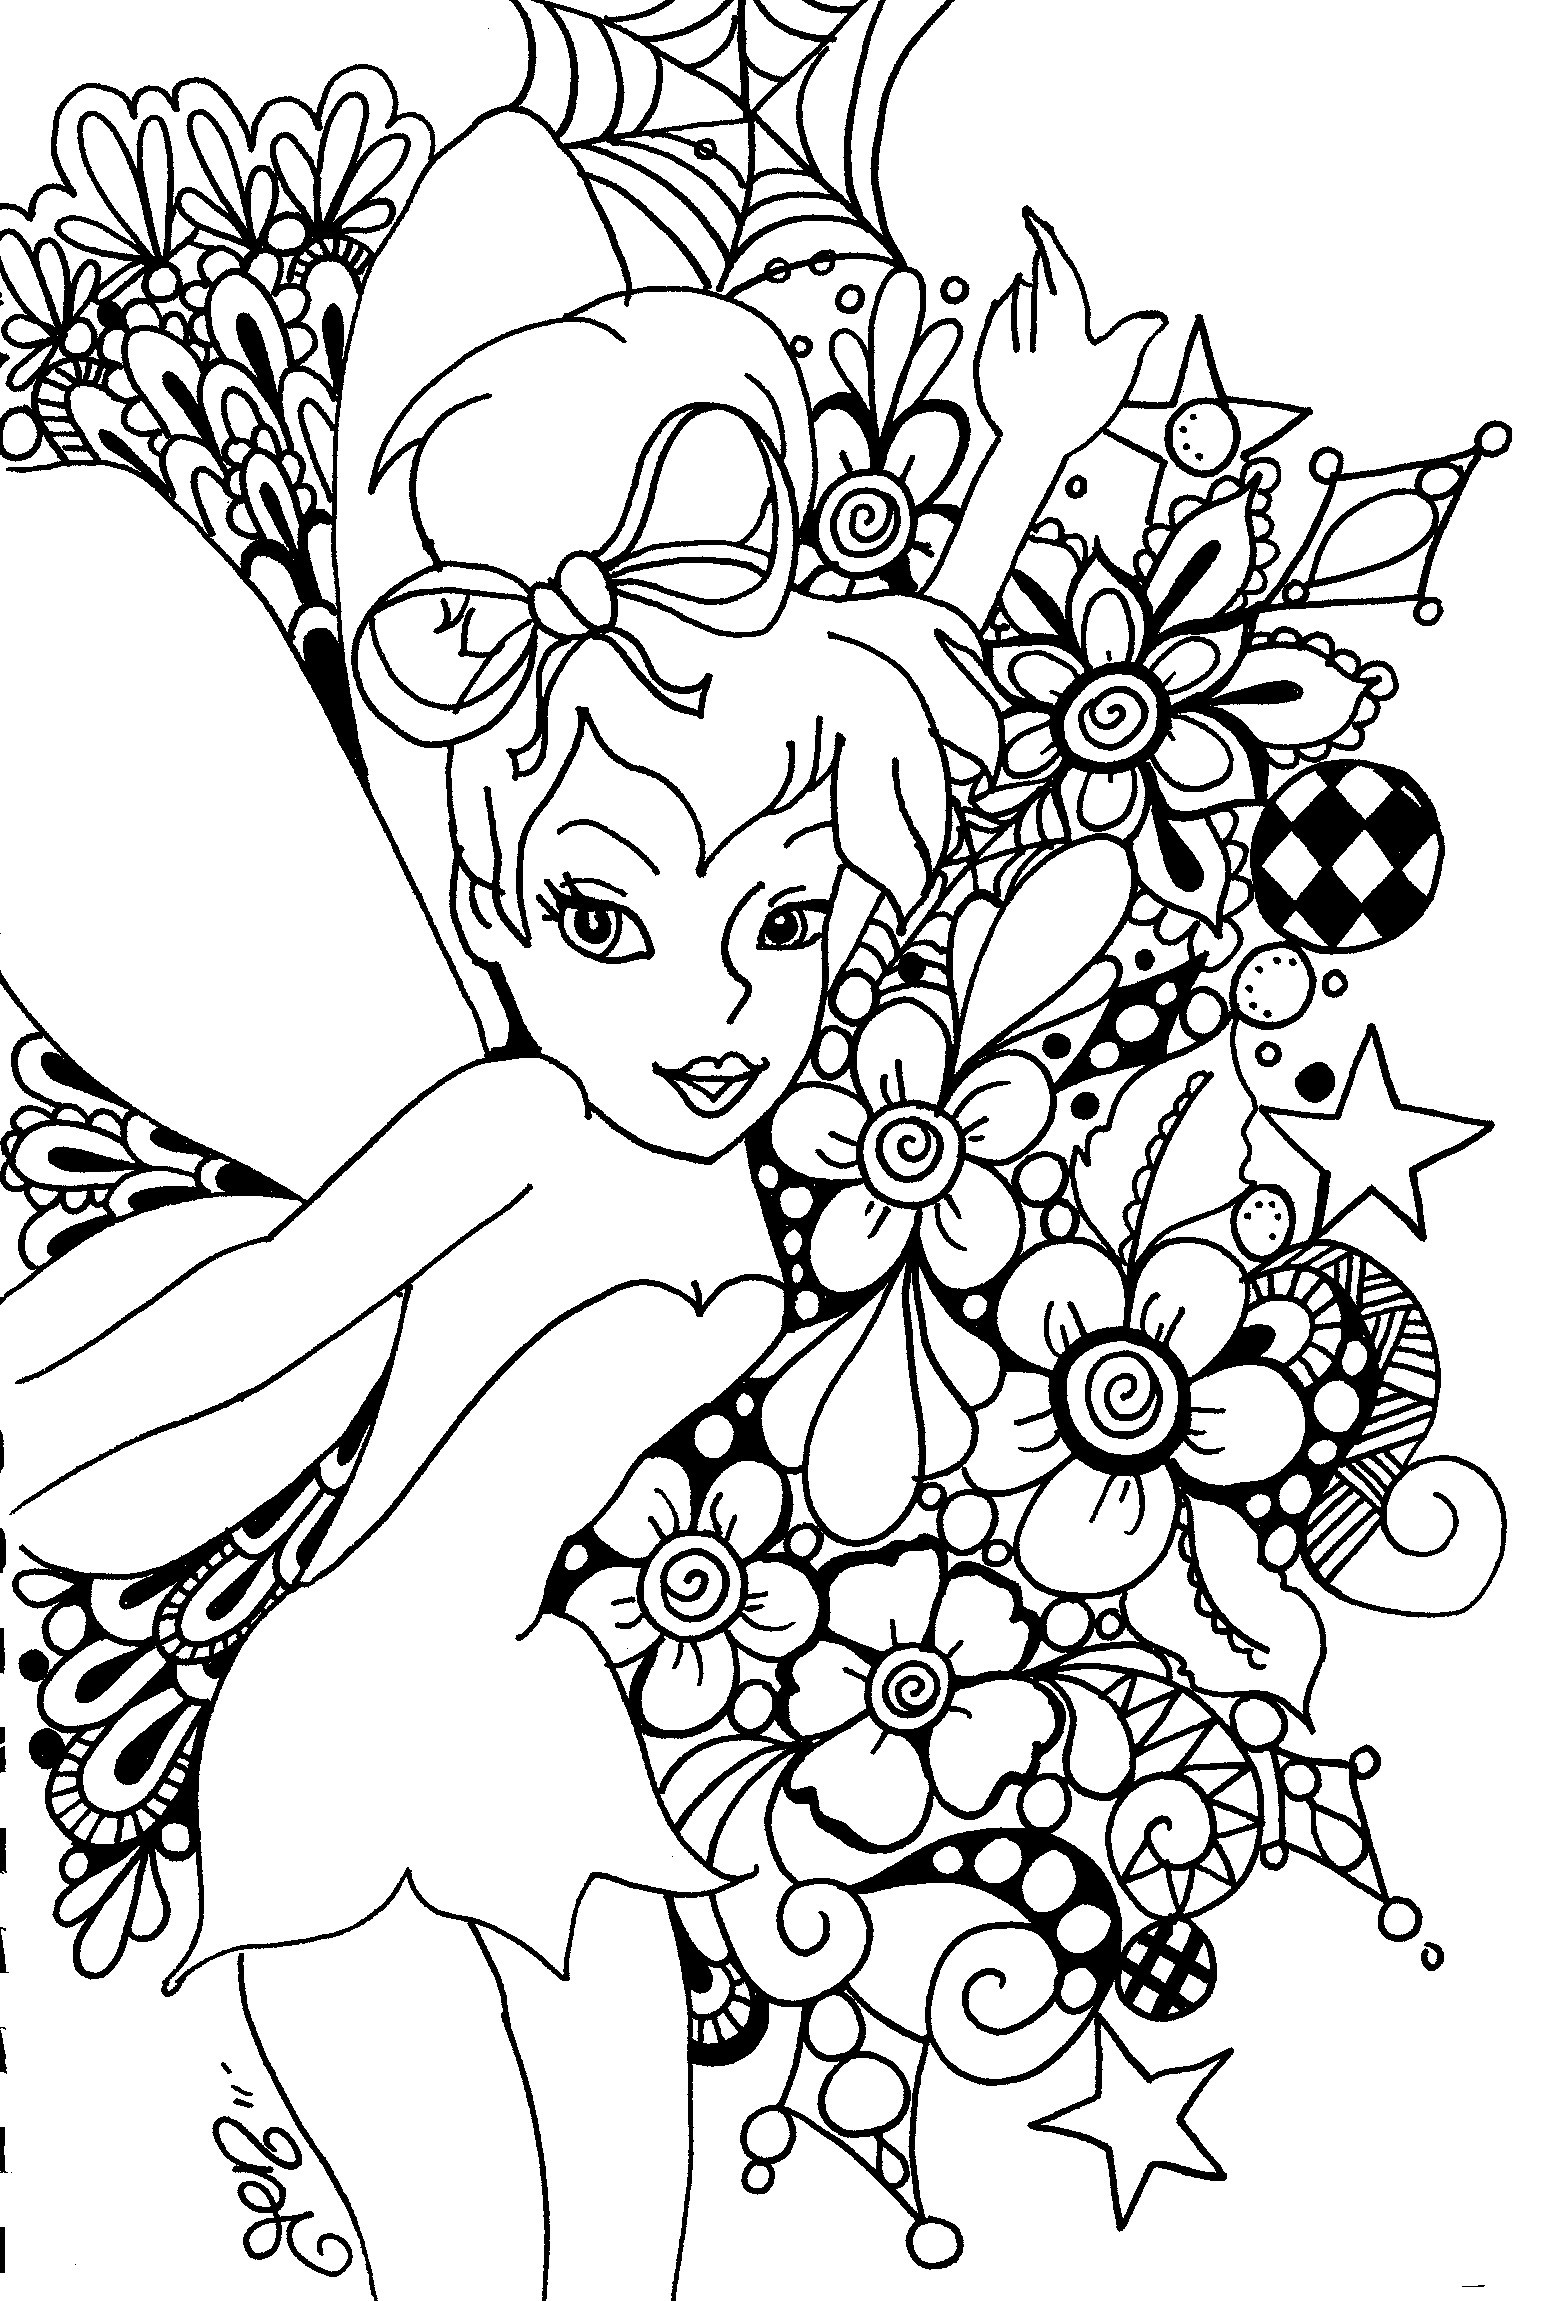 Free Coloring Sheets Adults  Free Printable Tinkerbell Coloring Pages For Kids